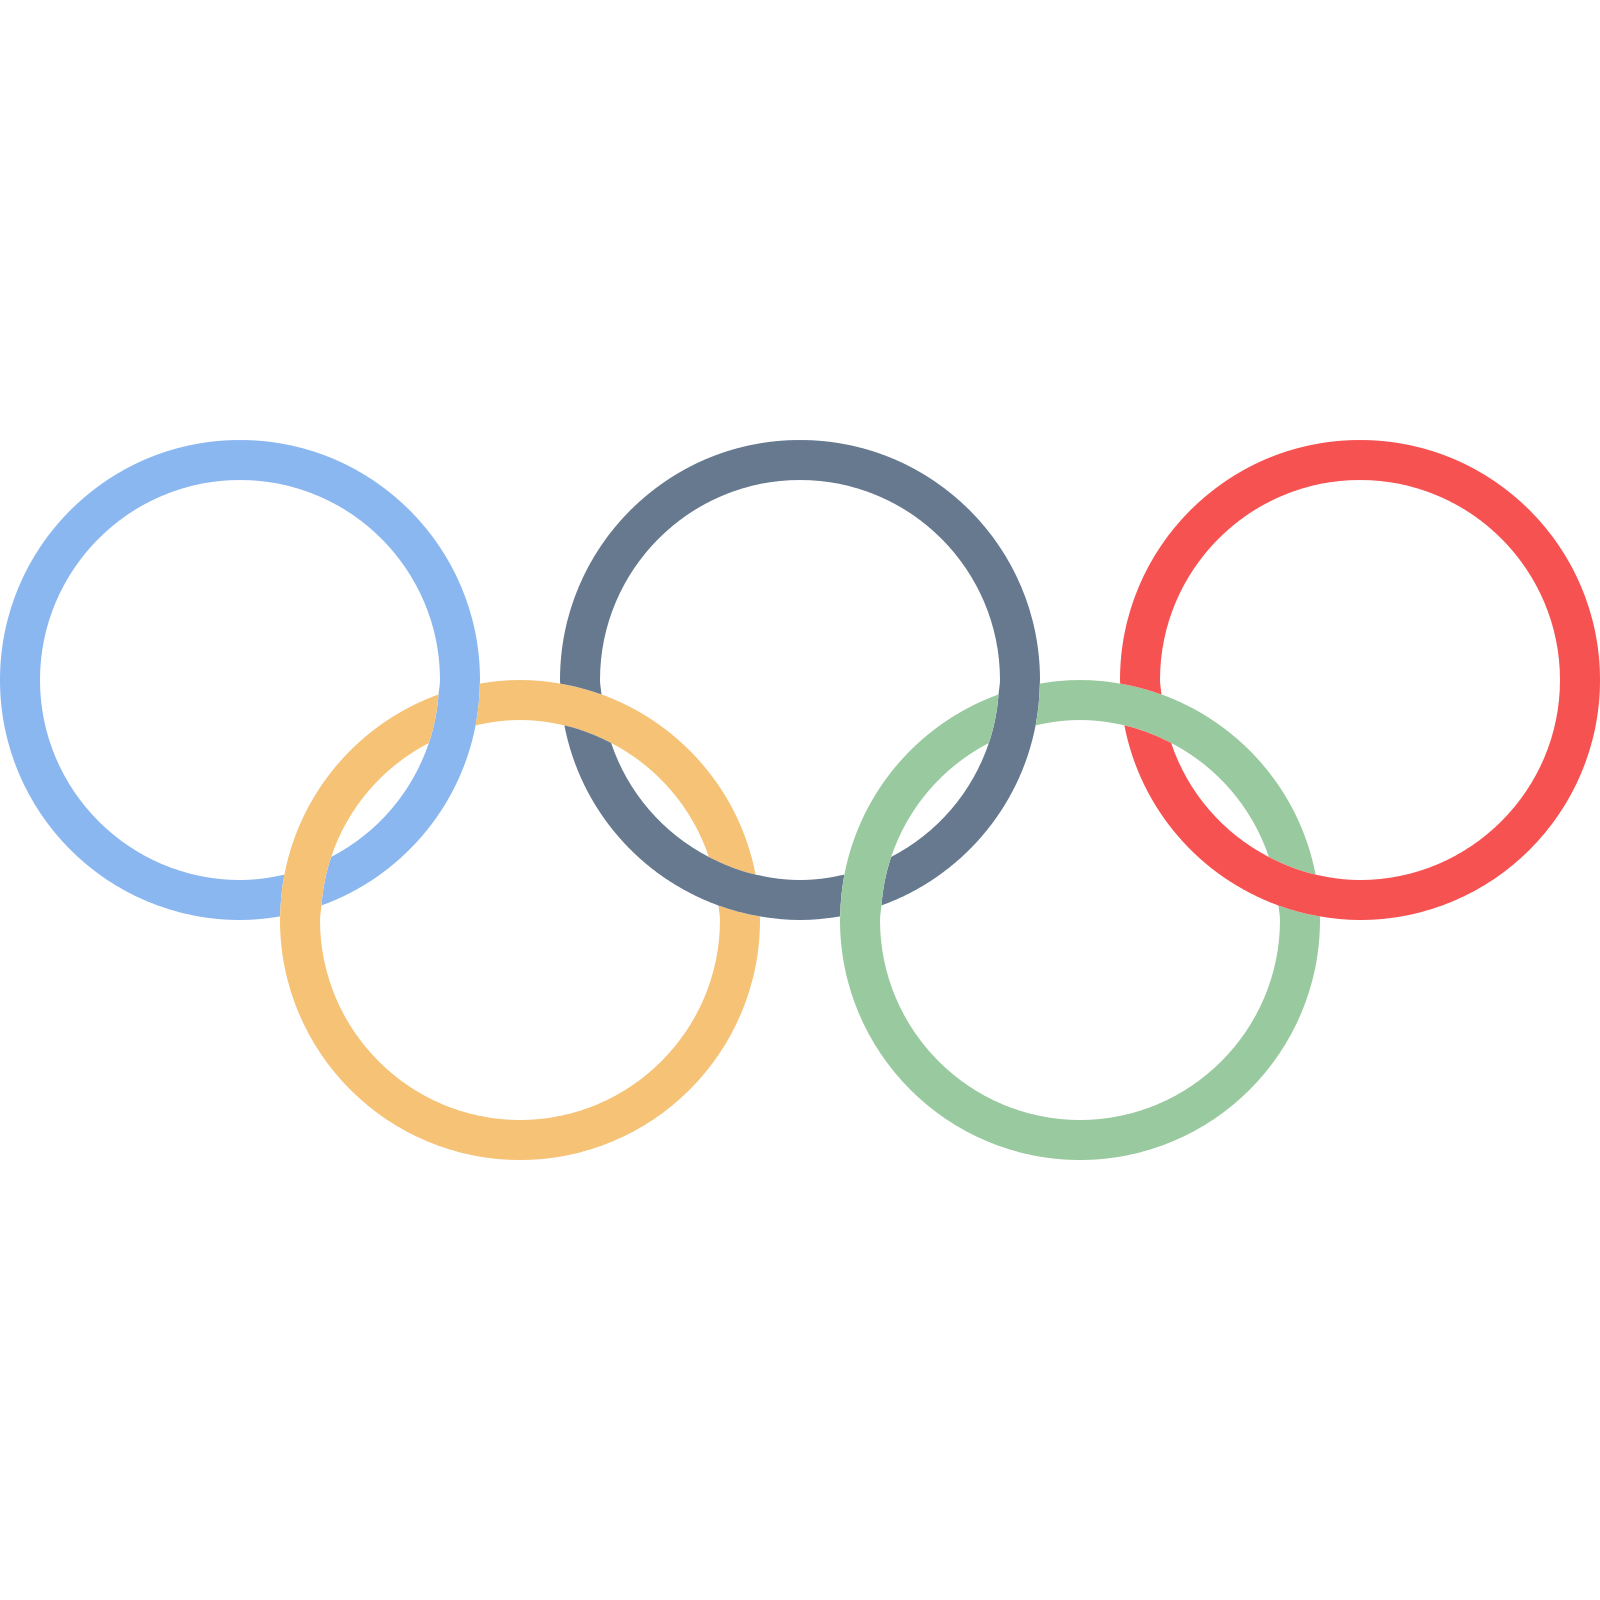 Olympic Olympics Winter Area Text Symbols Games PNG Image